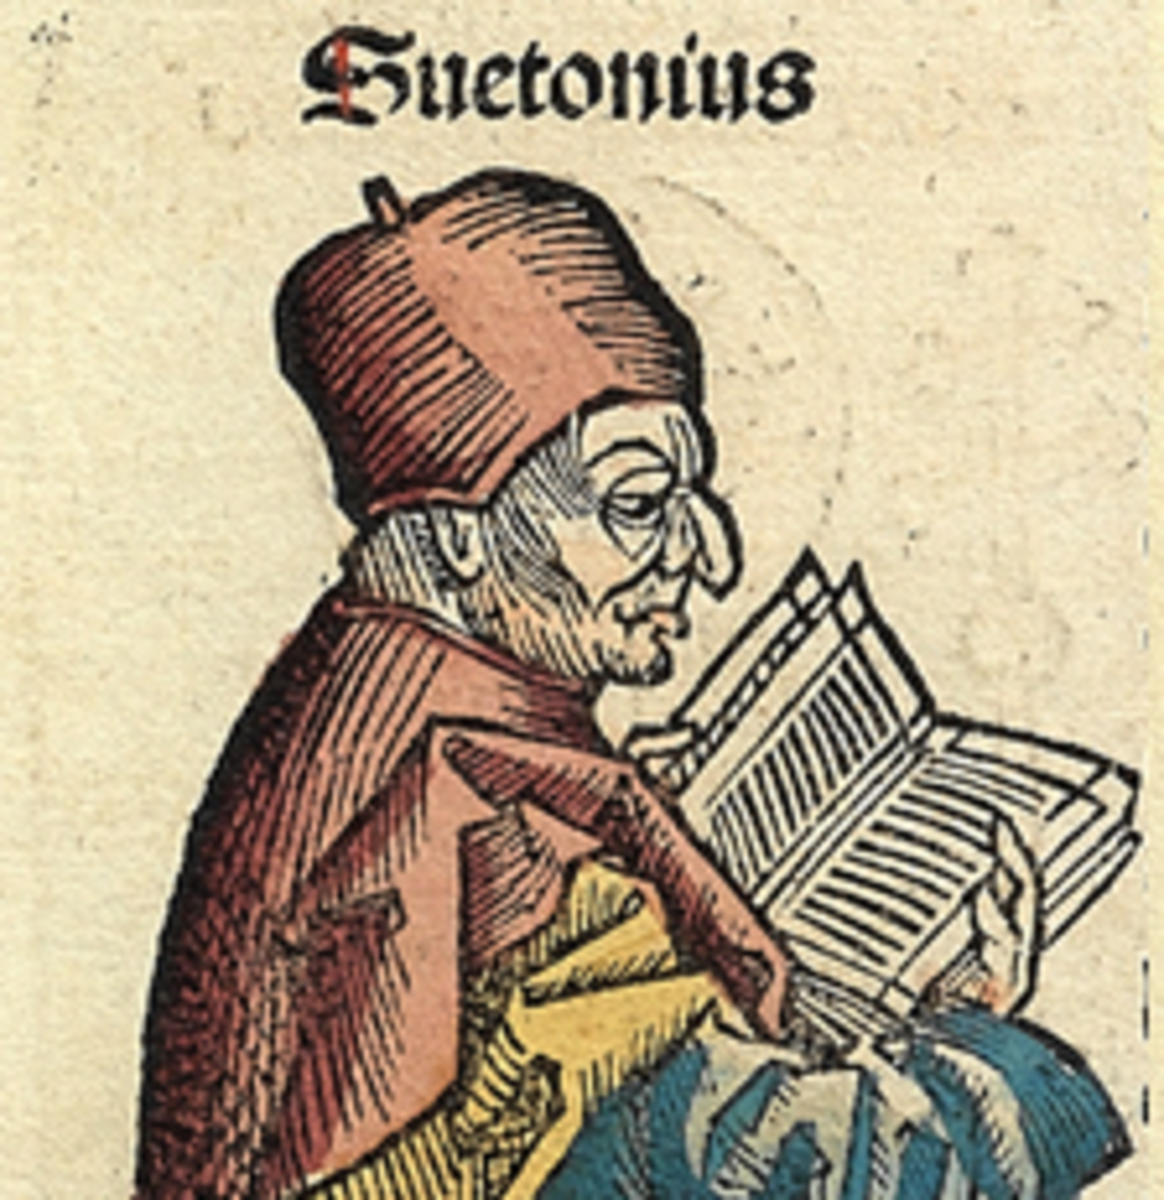 A detail from the an illustration of Suetonius from the Nuremberg Chronicle.